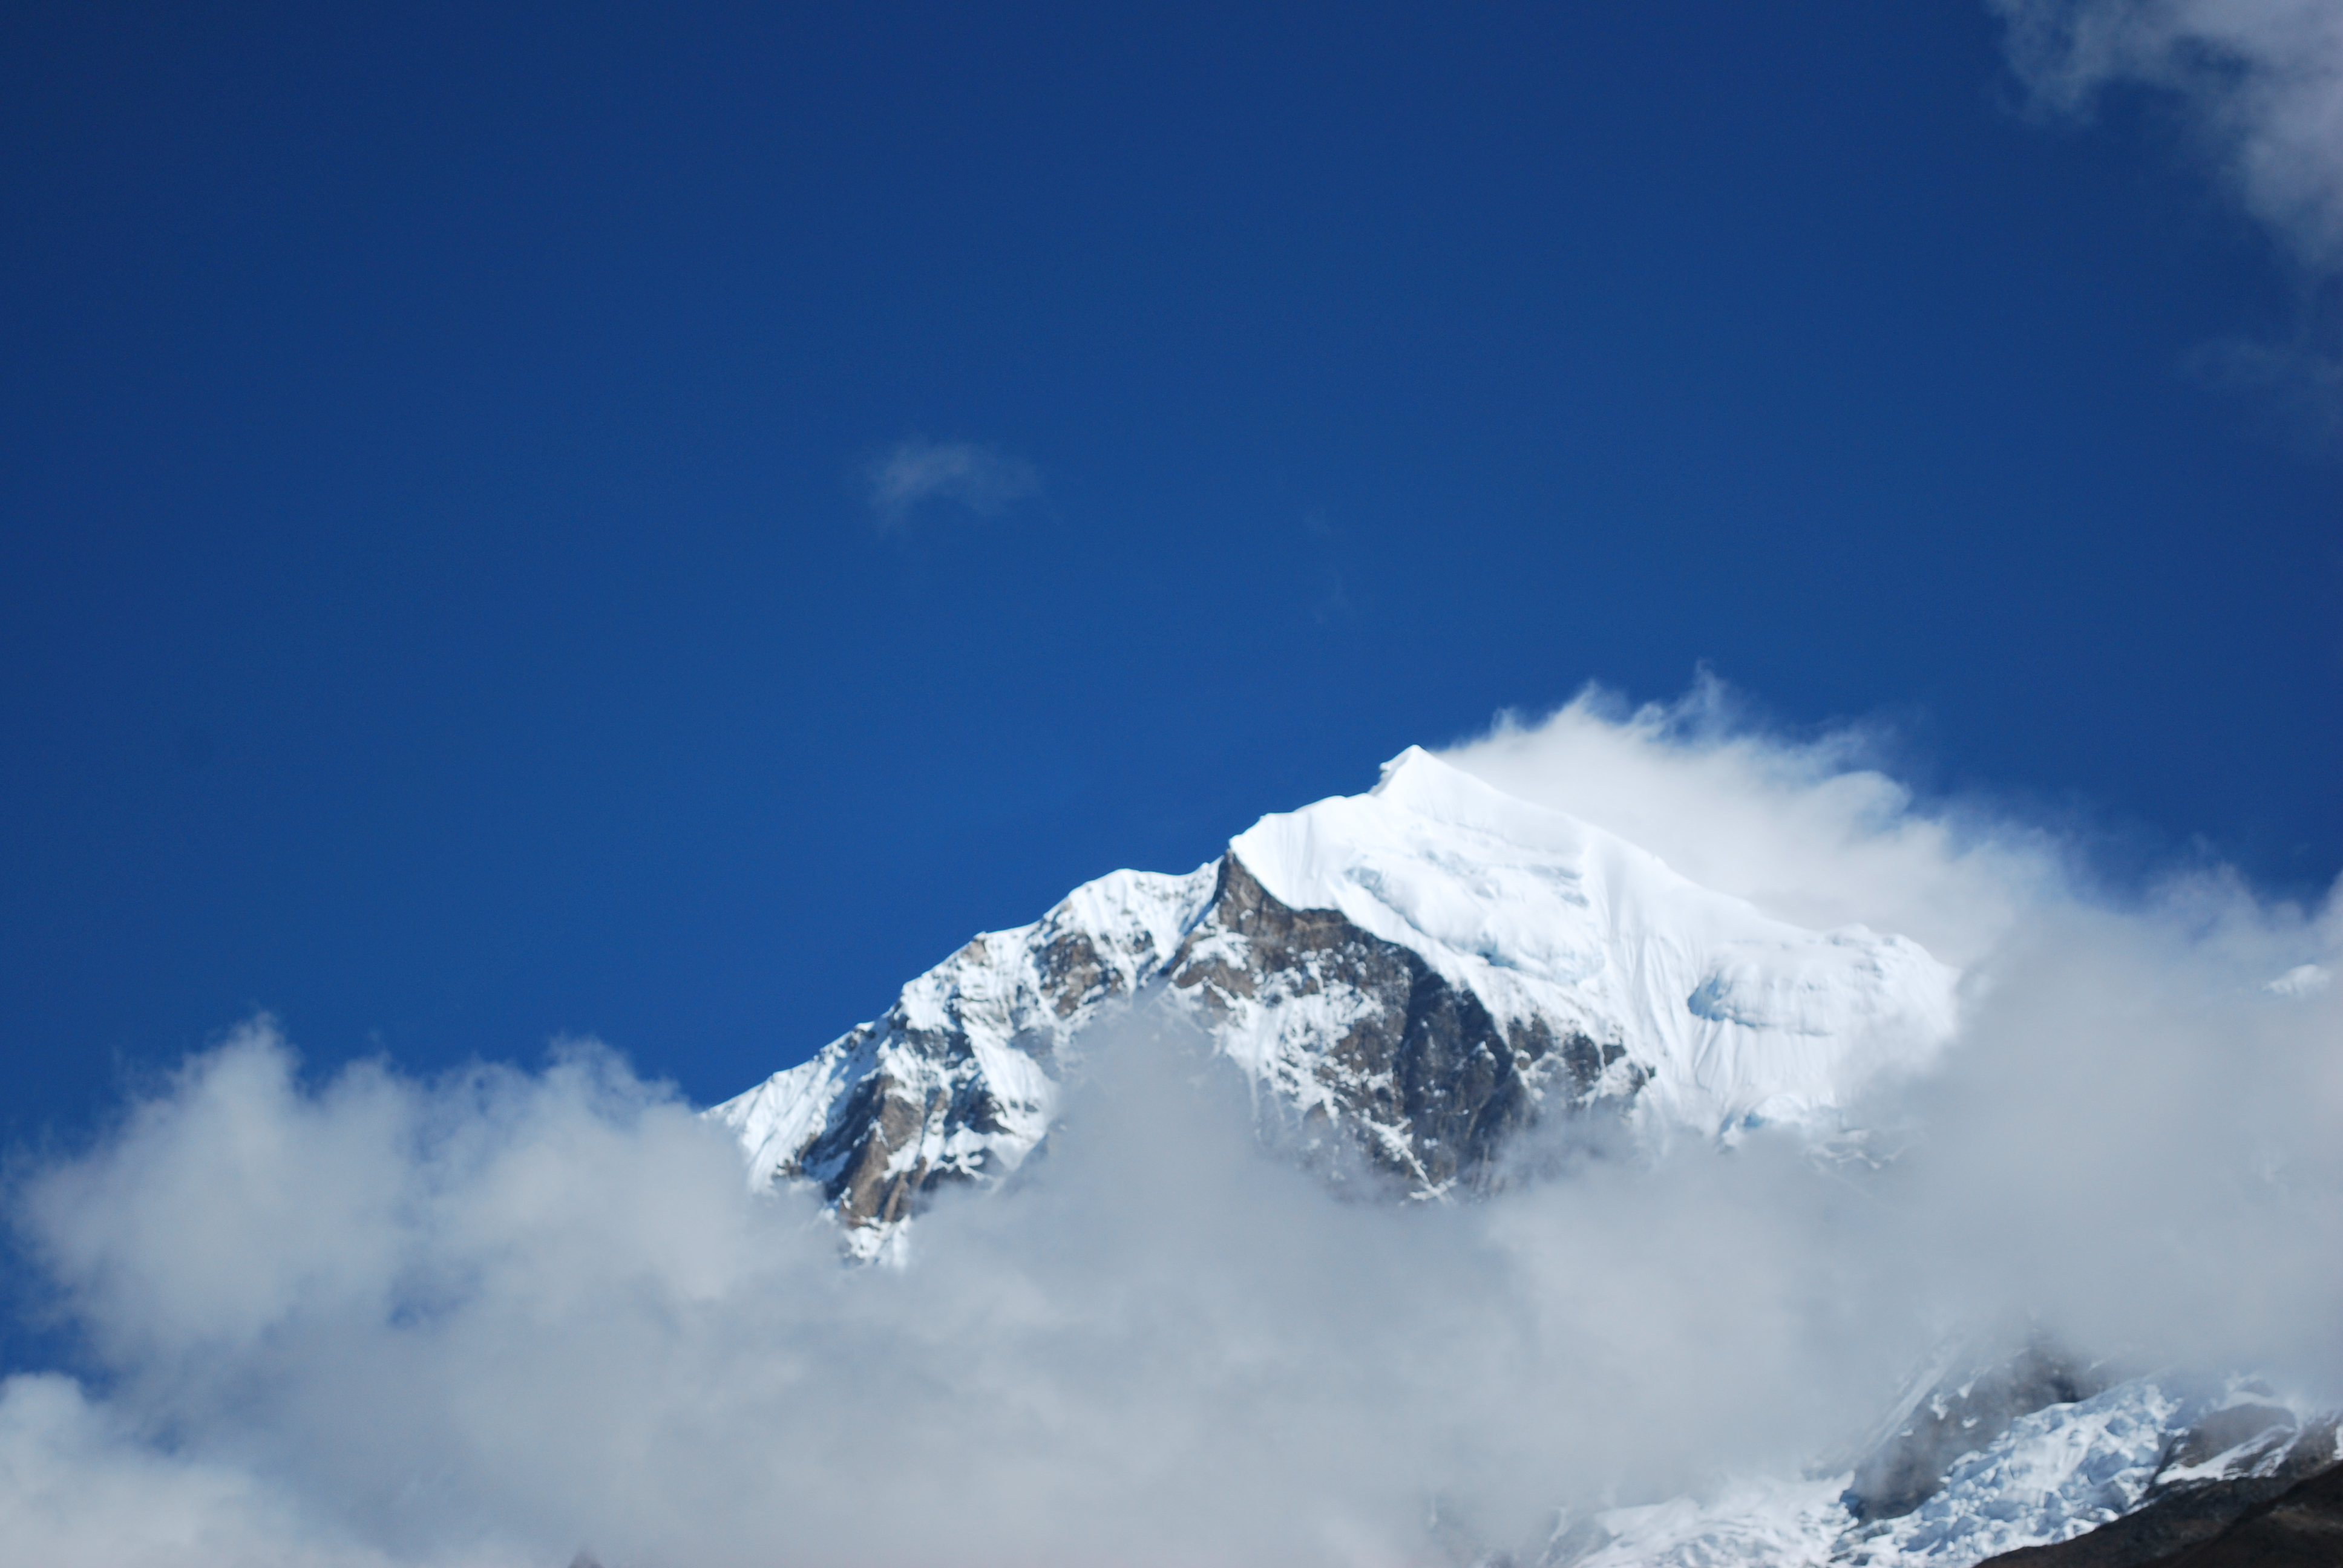 4. One of the five peaks of Kanchenjunga covered in clouds 1800